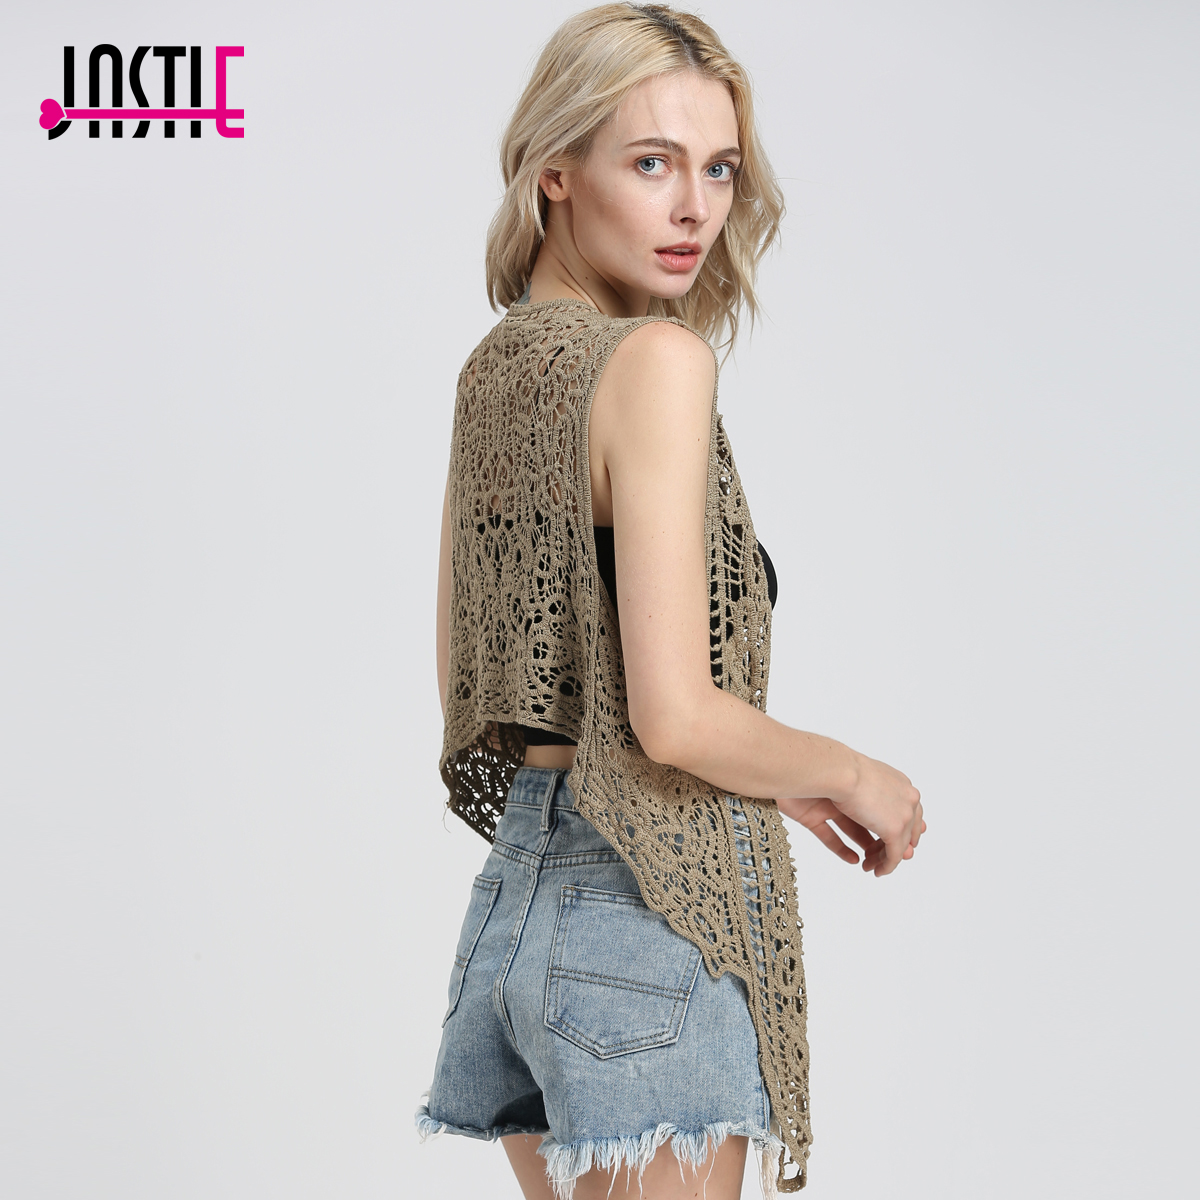 Jastie Asymmetric Open Stitch Cardigan Summer Beach Boho Hippie People Style Crochet Knit Embroidery Blouse Sleeveless Vest 2019